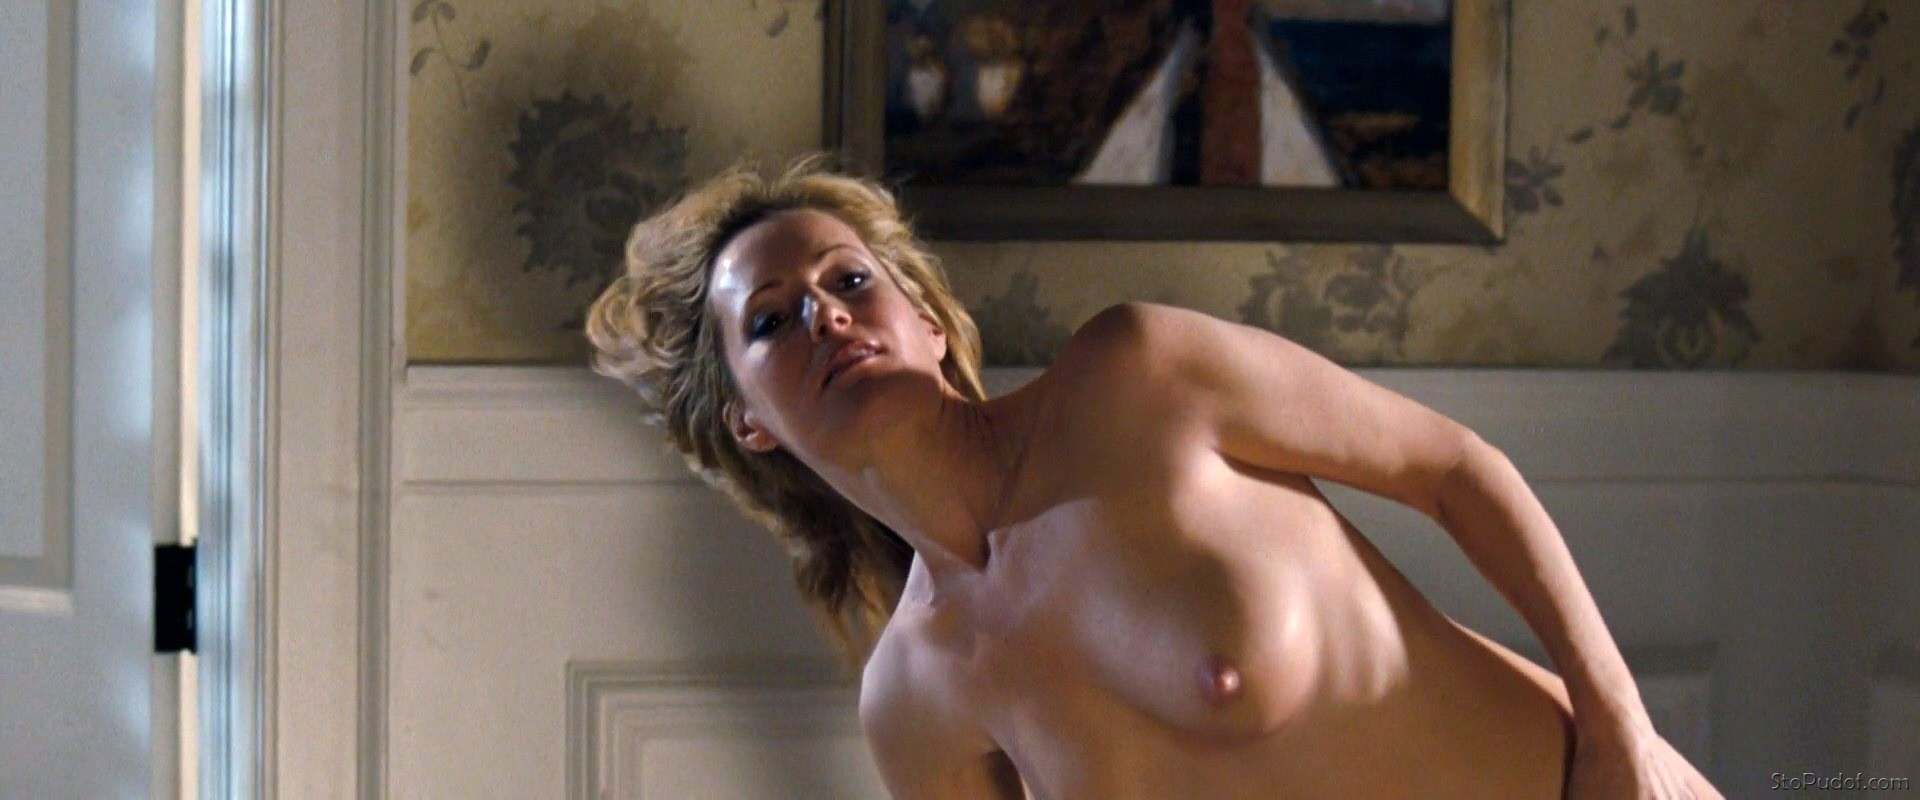 Leslie Mann nude pictures released - UkPhotoSafari